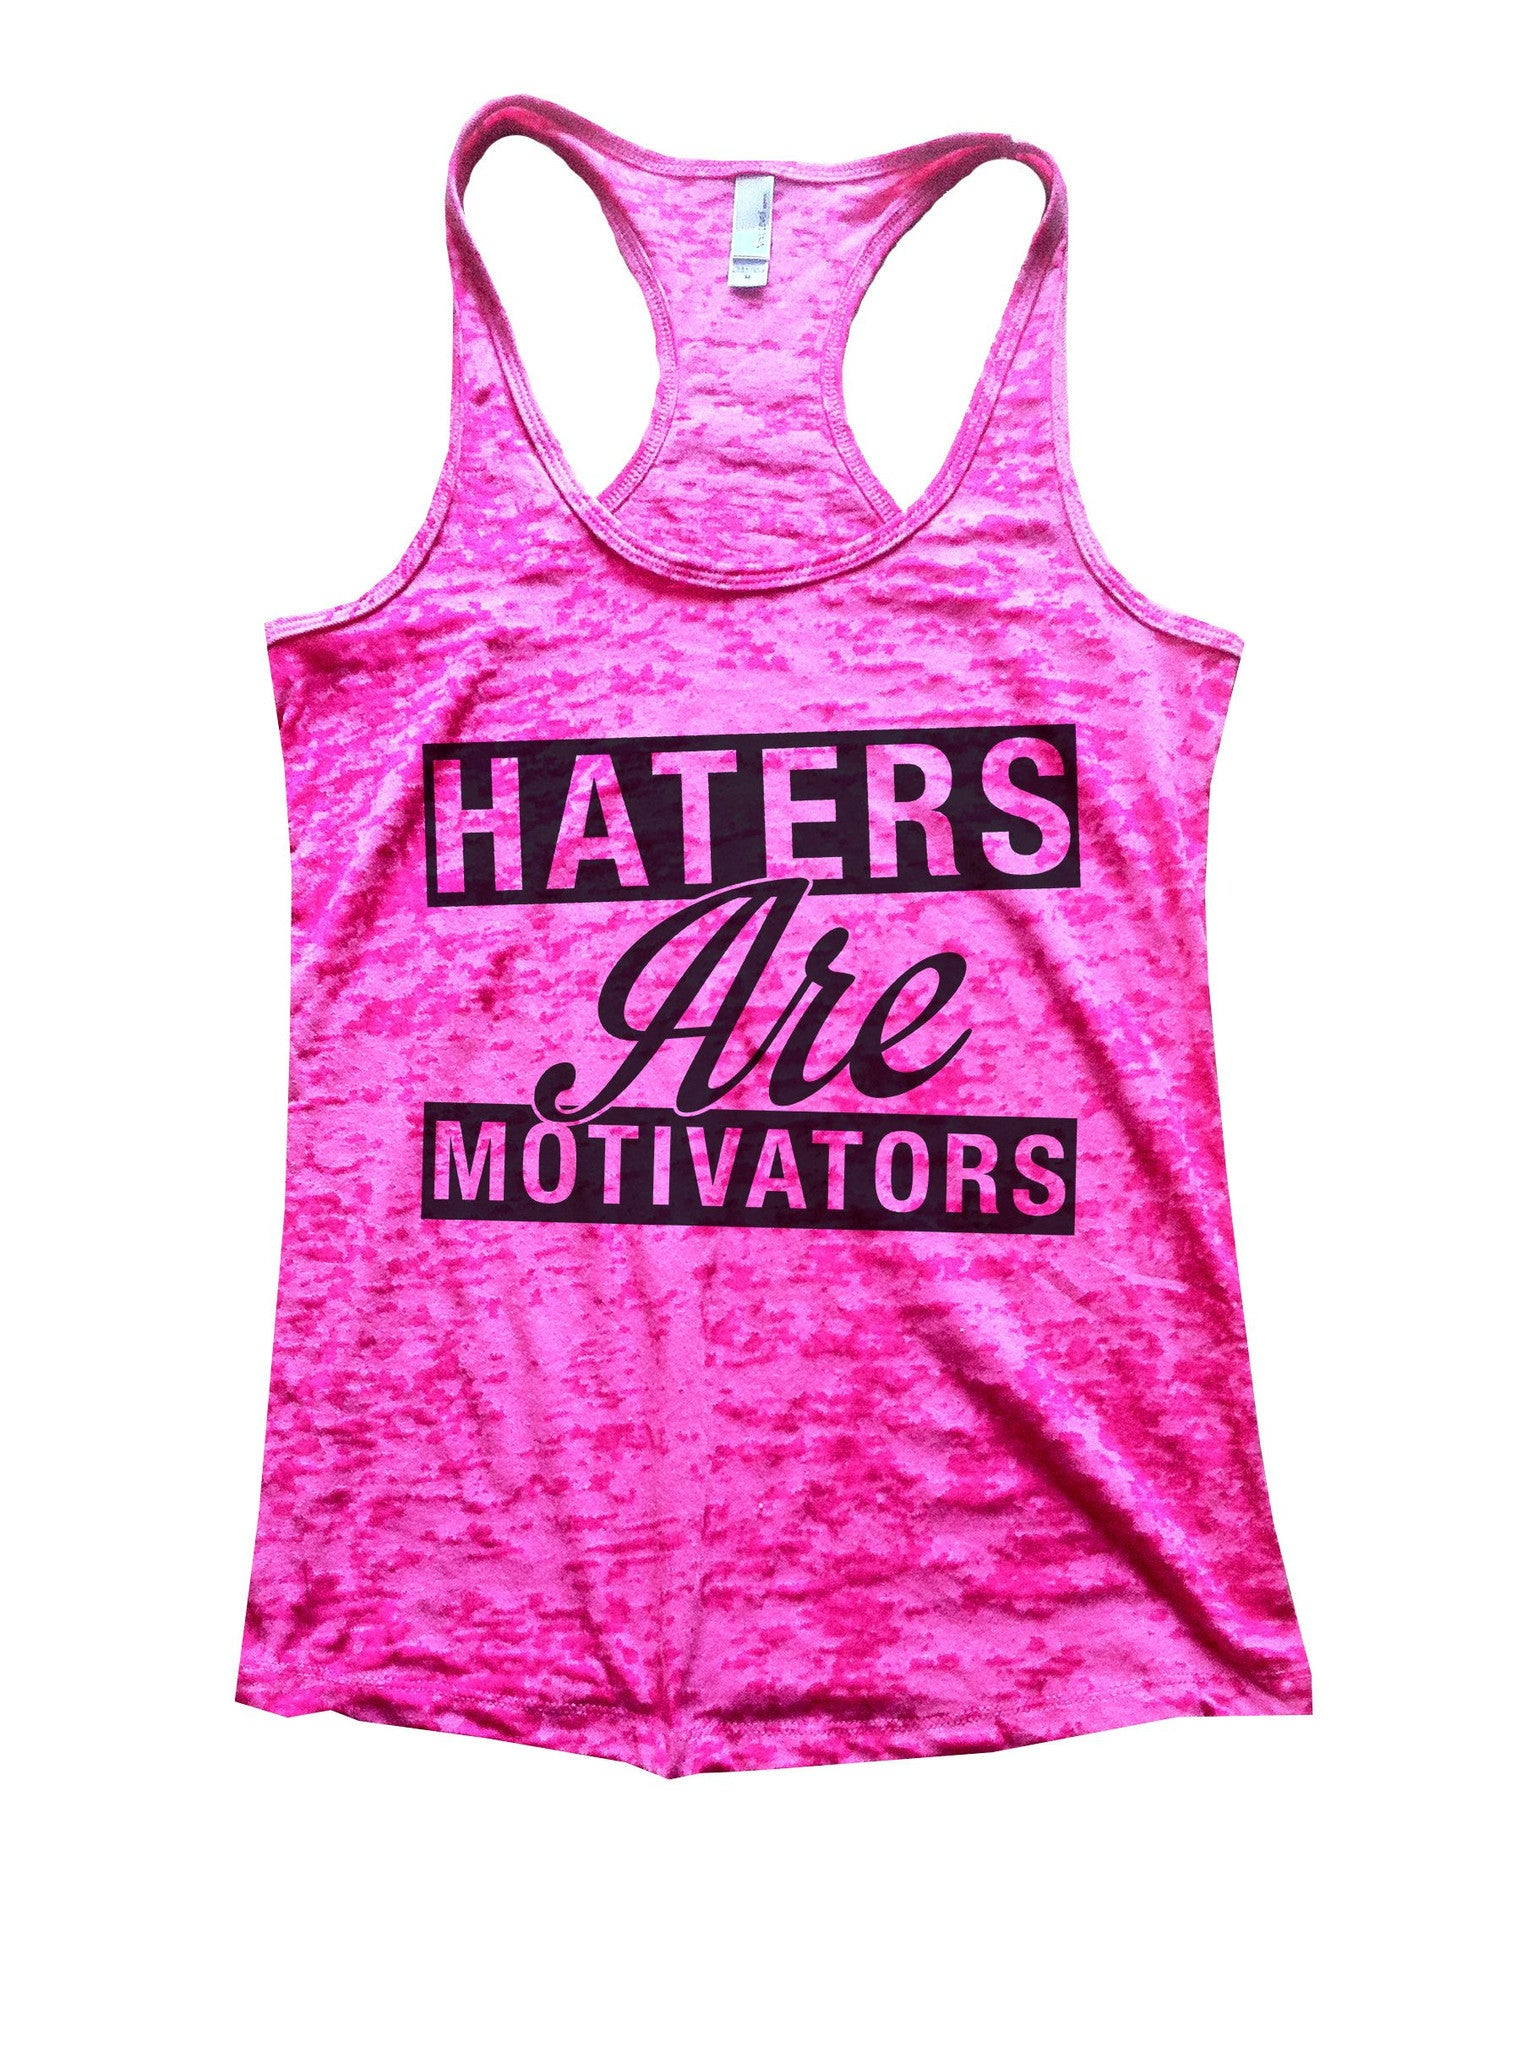 Haters Are Motivators Burnout Tank Top By BurnoutTankTops.com - 842 - Funny Shirts Tank Tops Burnouts and Triblends  - 5